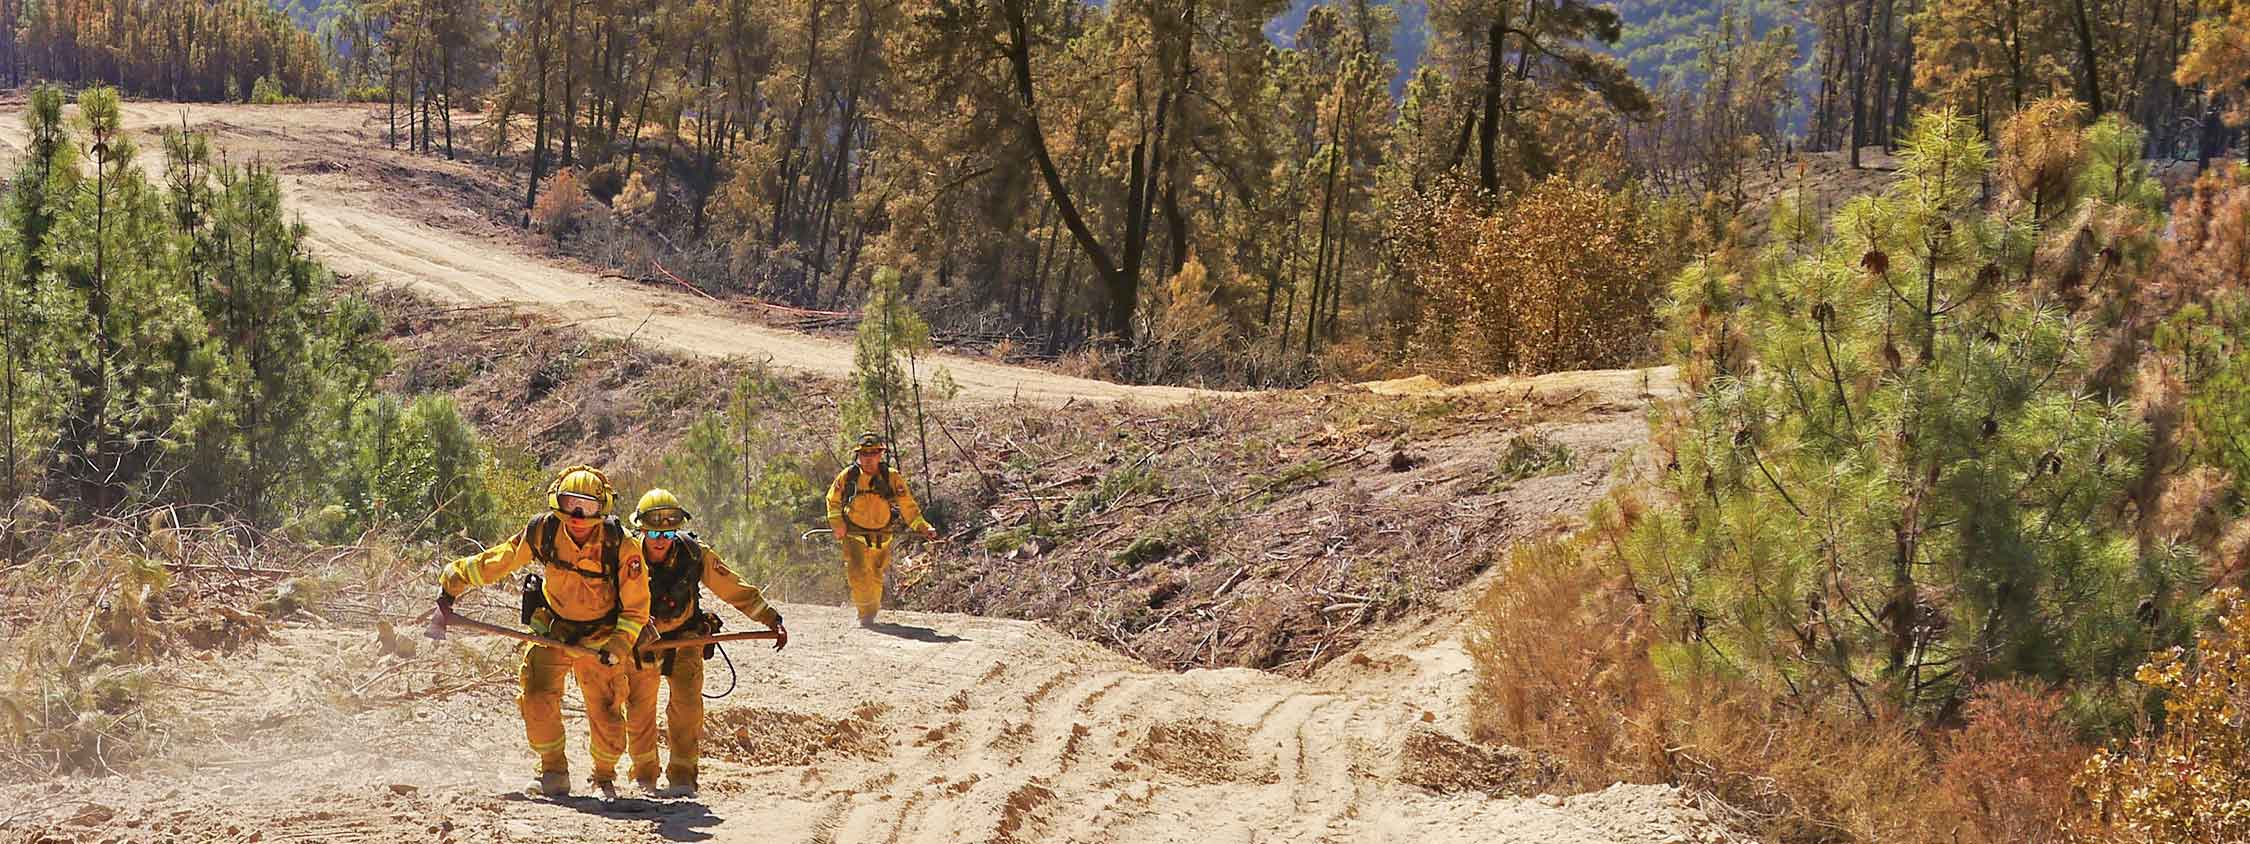 Firefighters in yellow uniforms walking uphill on dirt trail through forest